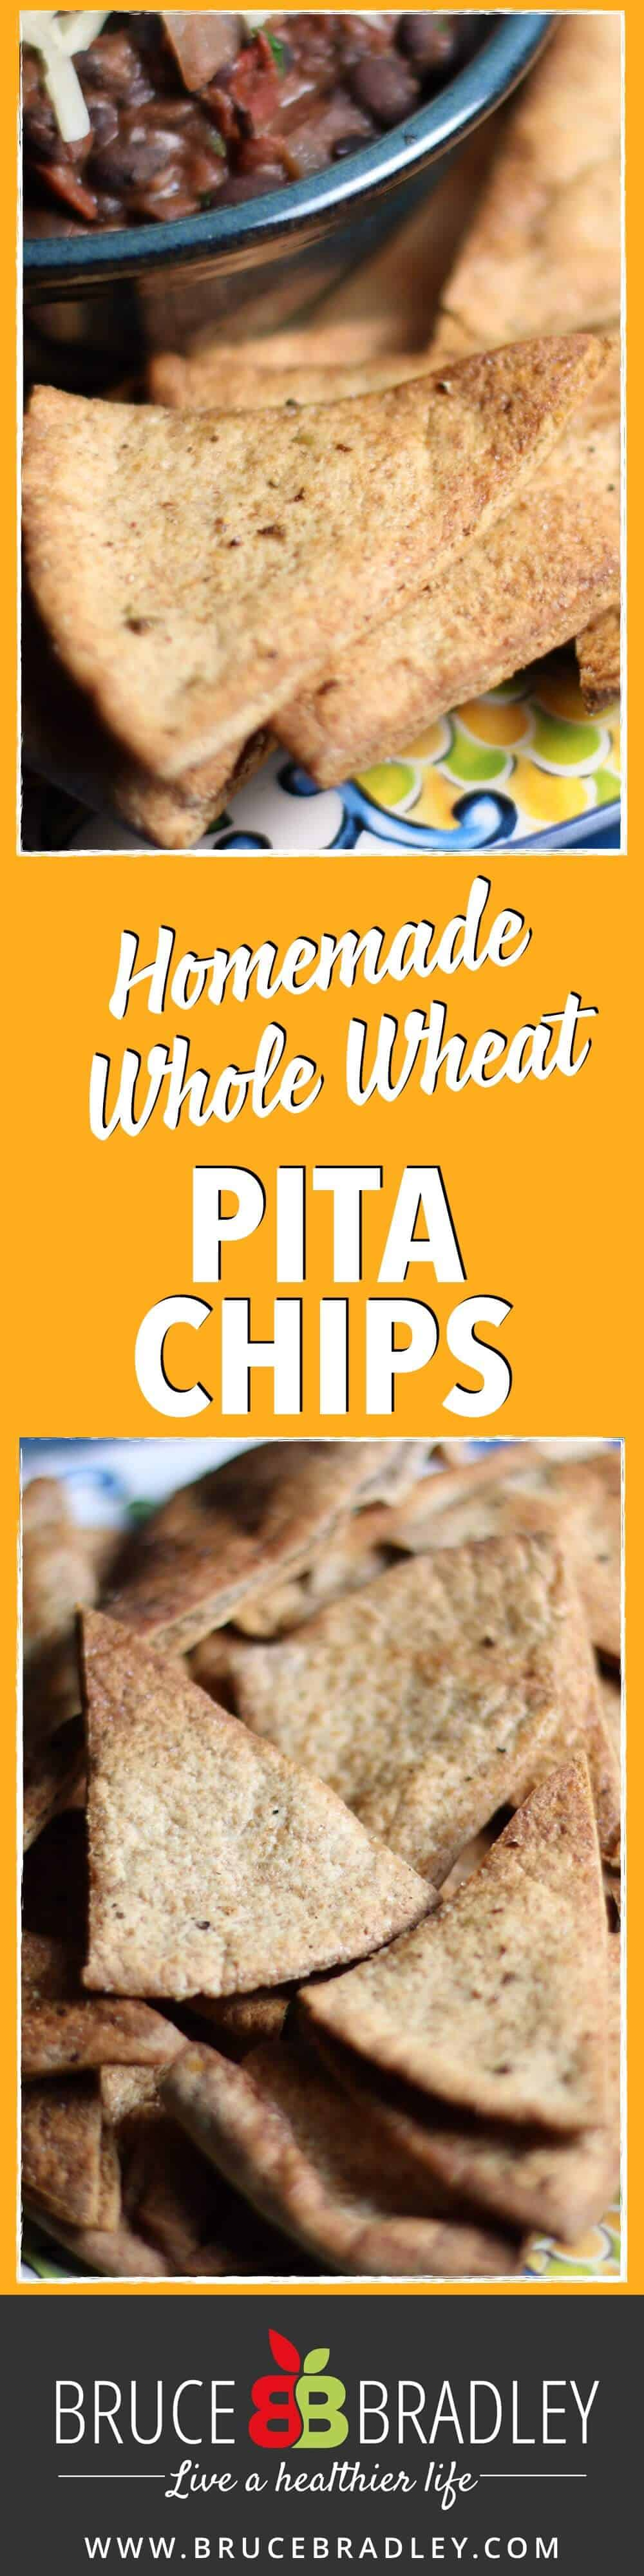 These homemade whole wheat pita chips are a tasty, easy substitute for highly processed, store-bought crackers!